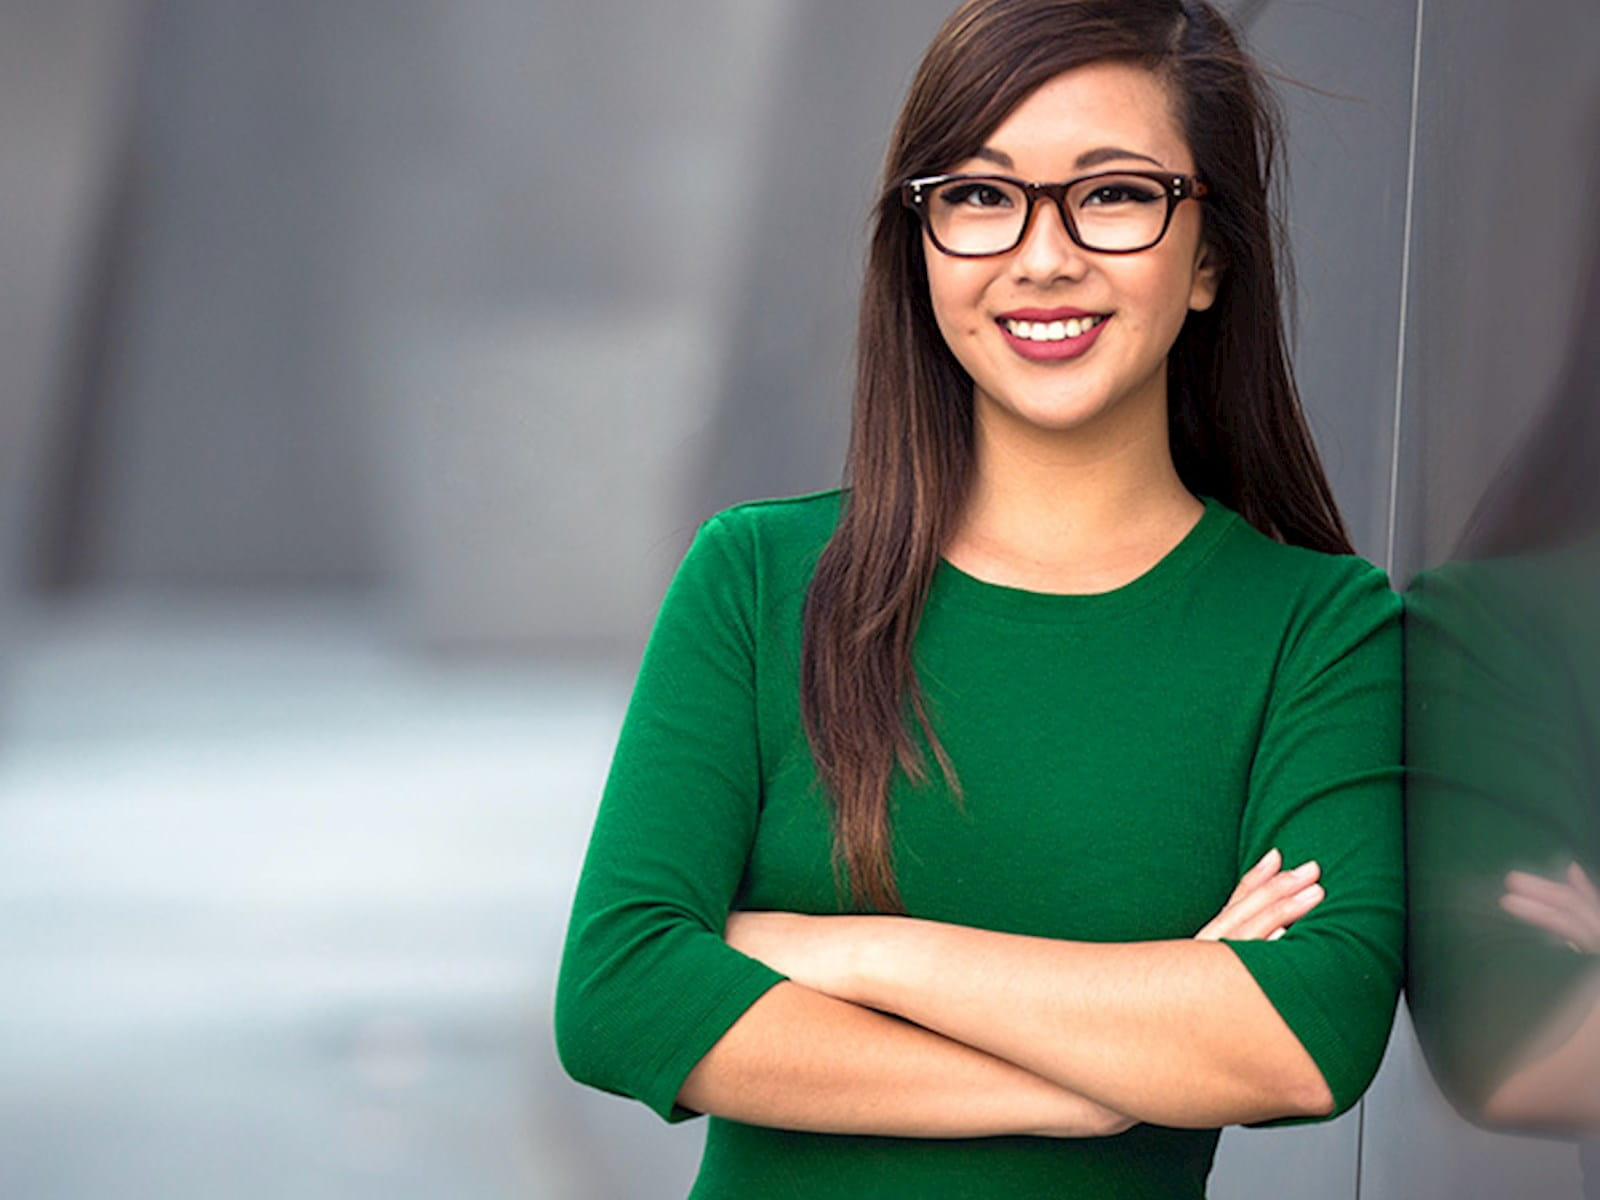 Professional woman in green top